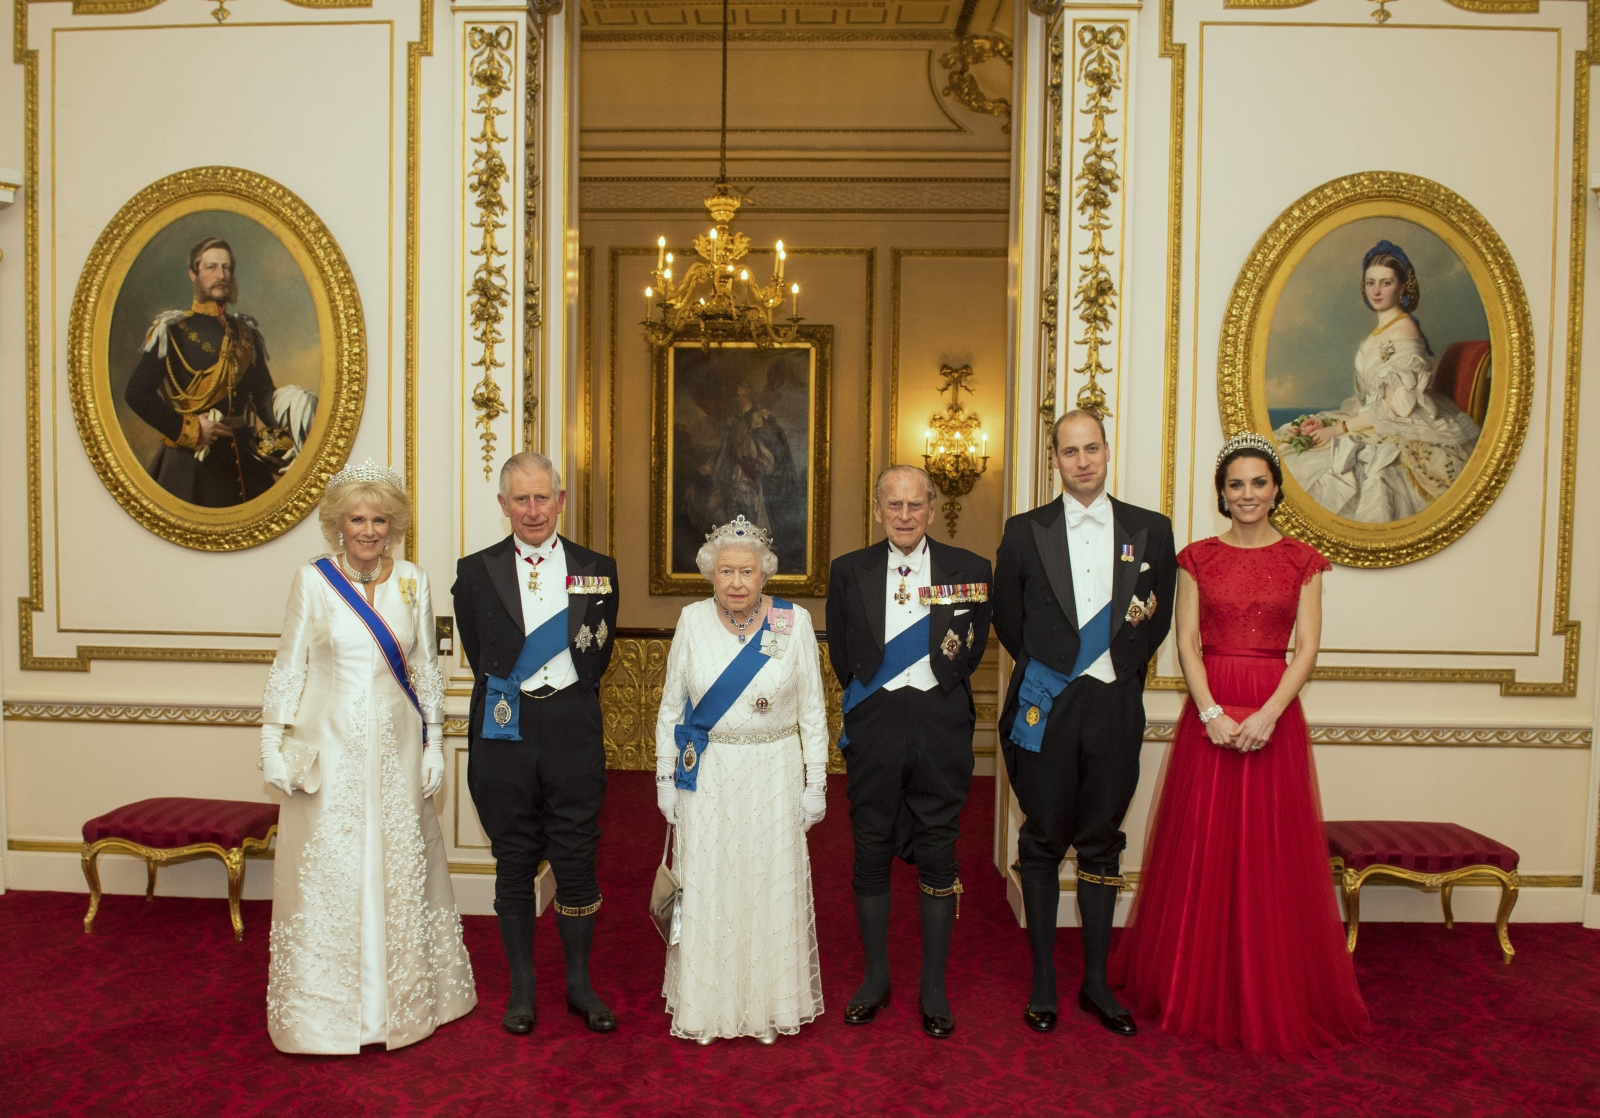 The royal family pose before evening reception